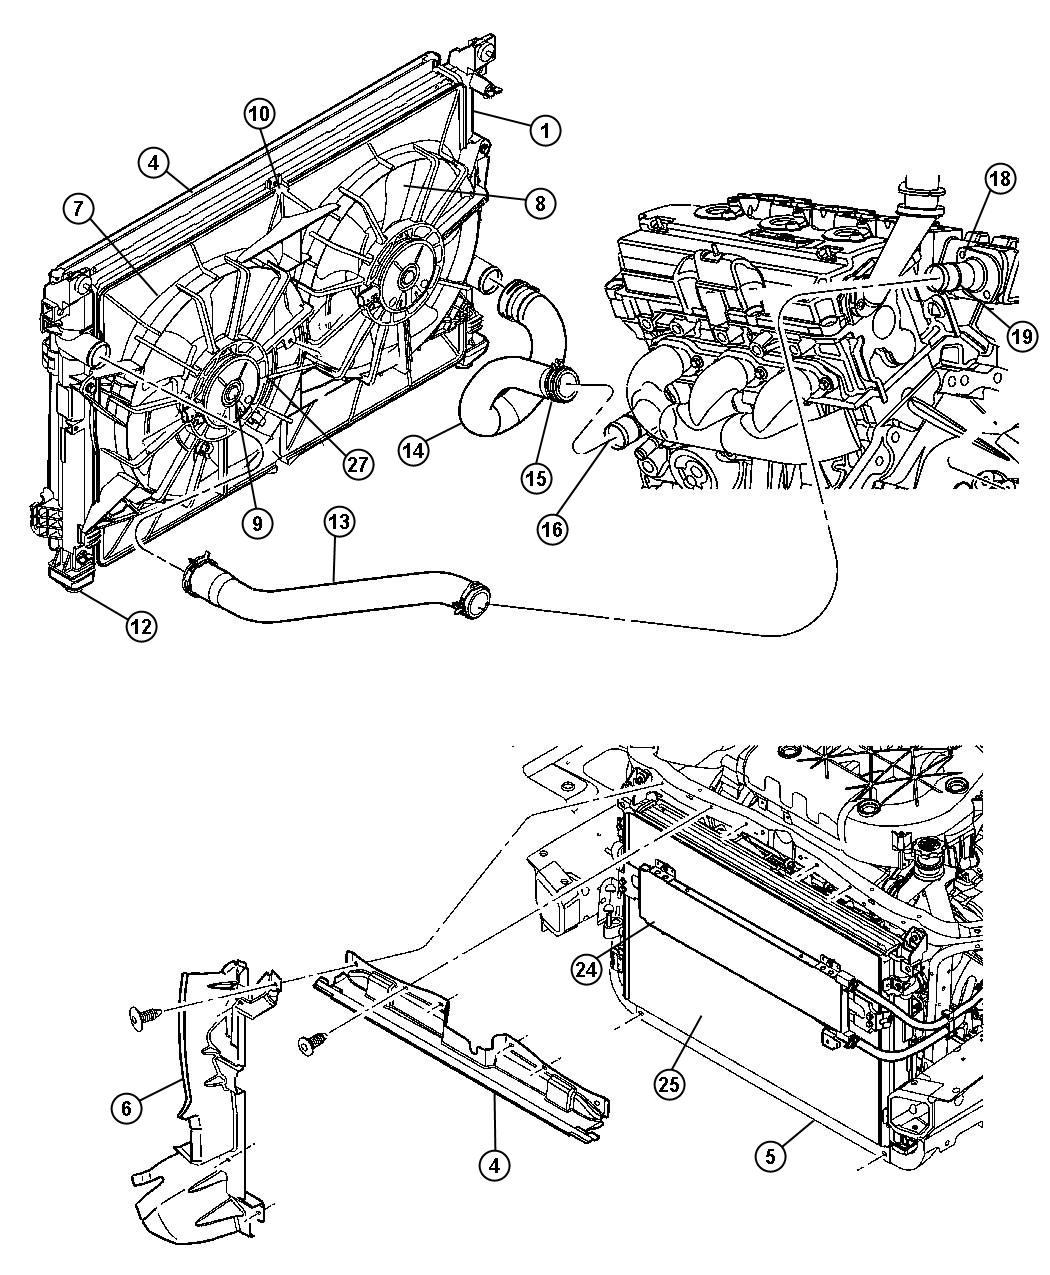 hight resolution of pacifica parts diagram on image 2004 chrysler pacifica engine pacifica parts diagram on image 2004 chrysler pacifica engine diagram